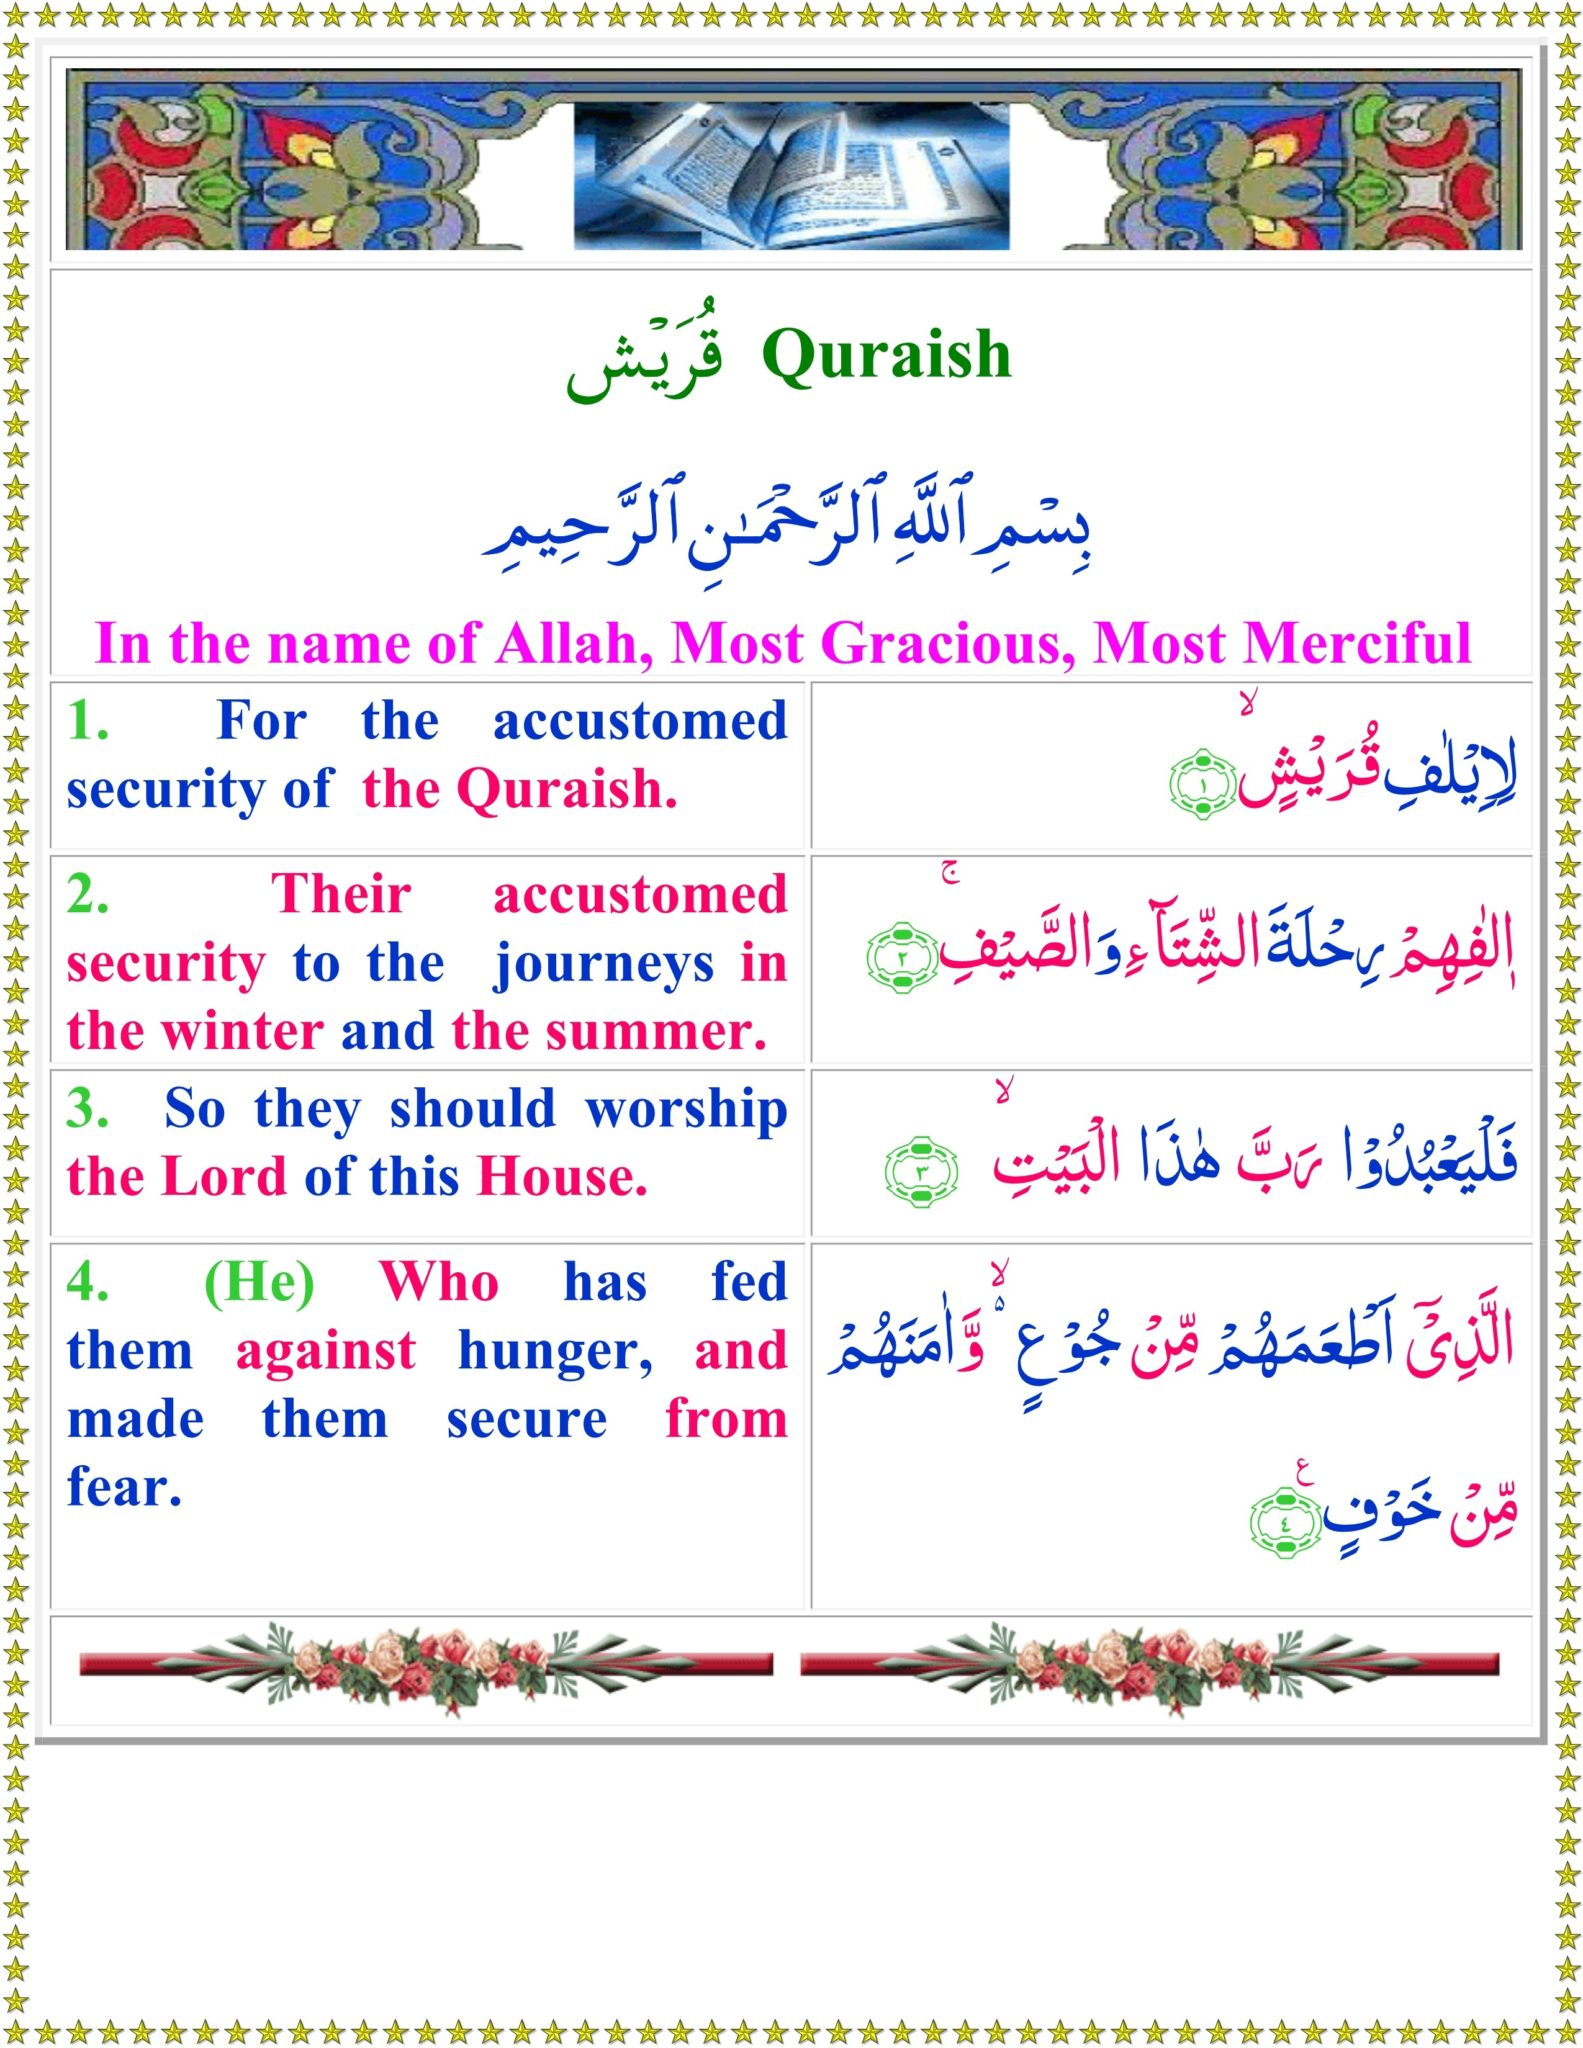 Surah Quraish translation in English